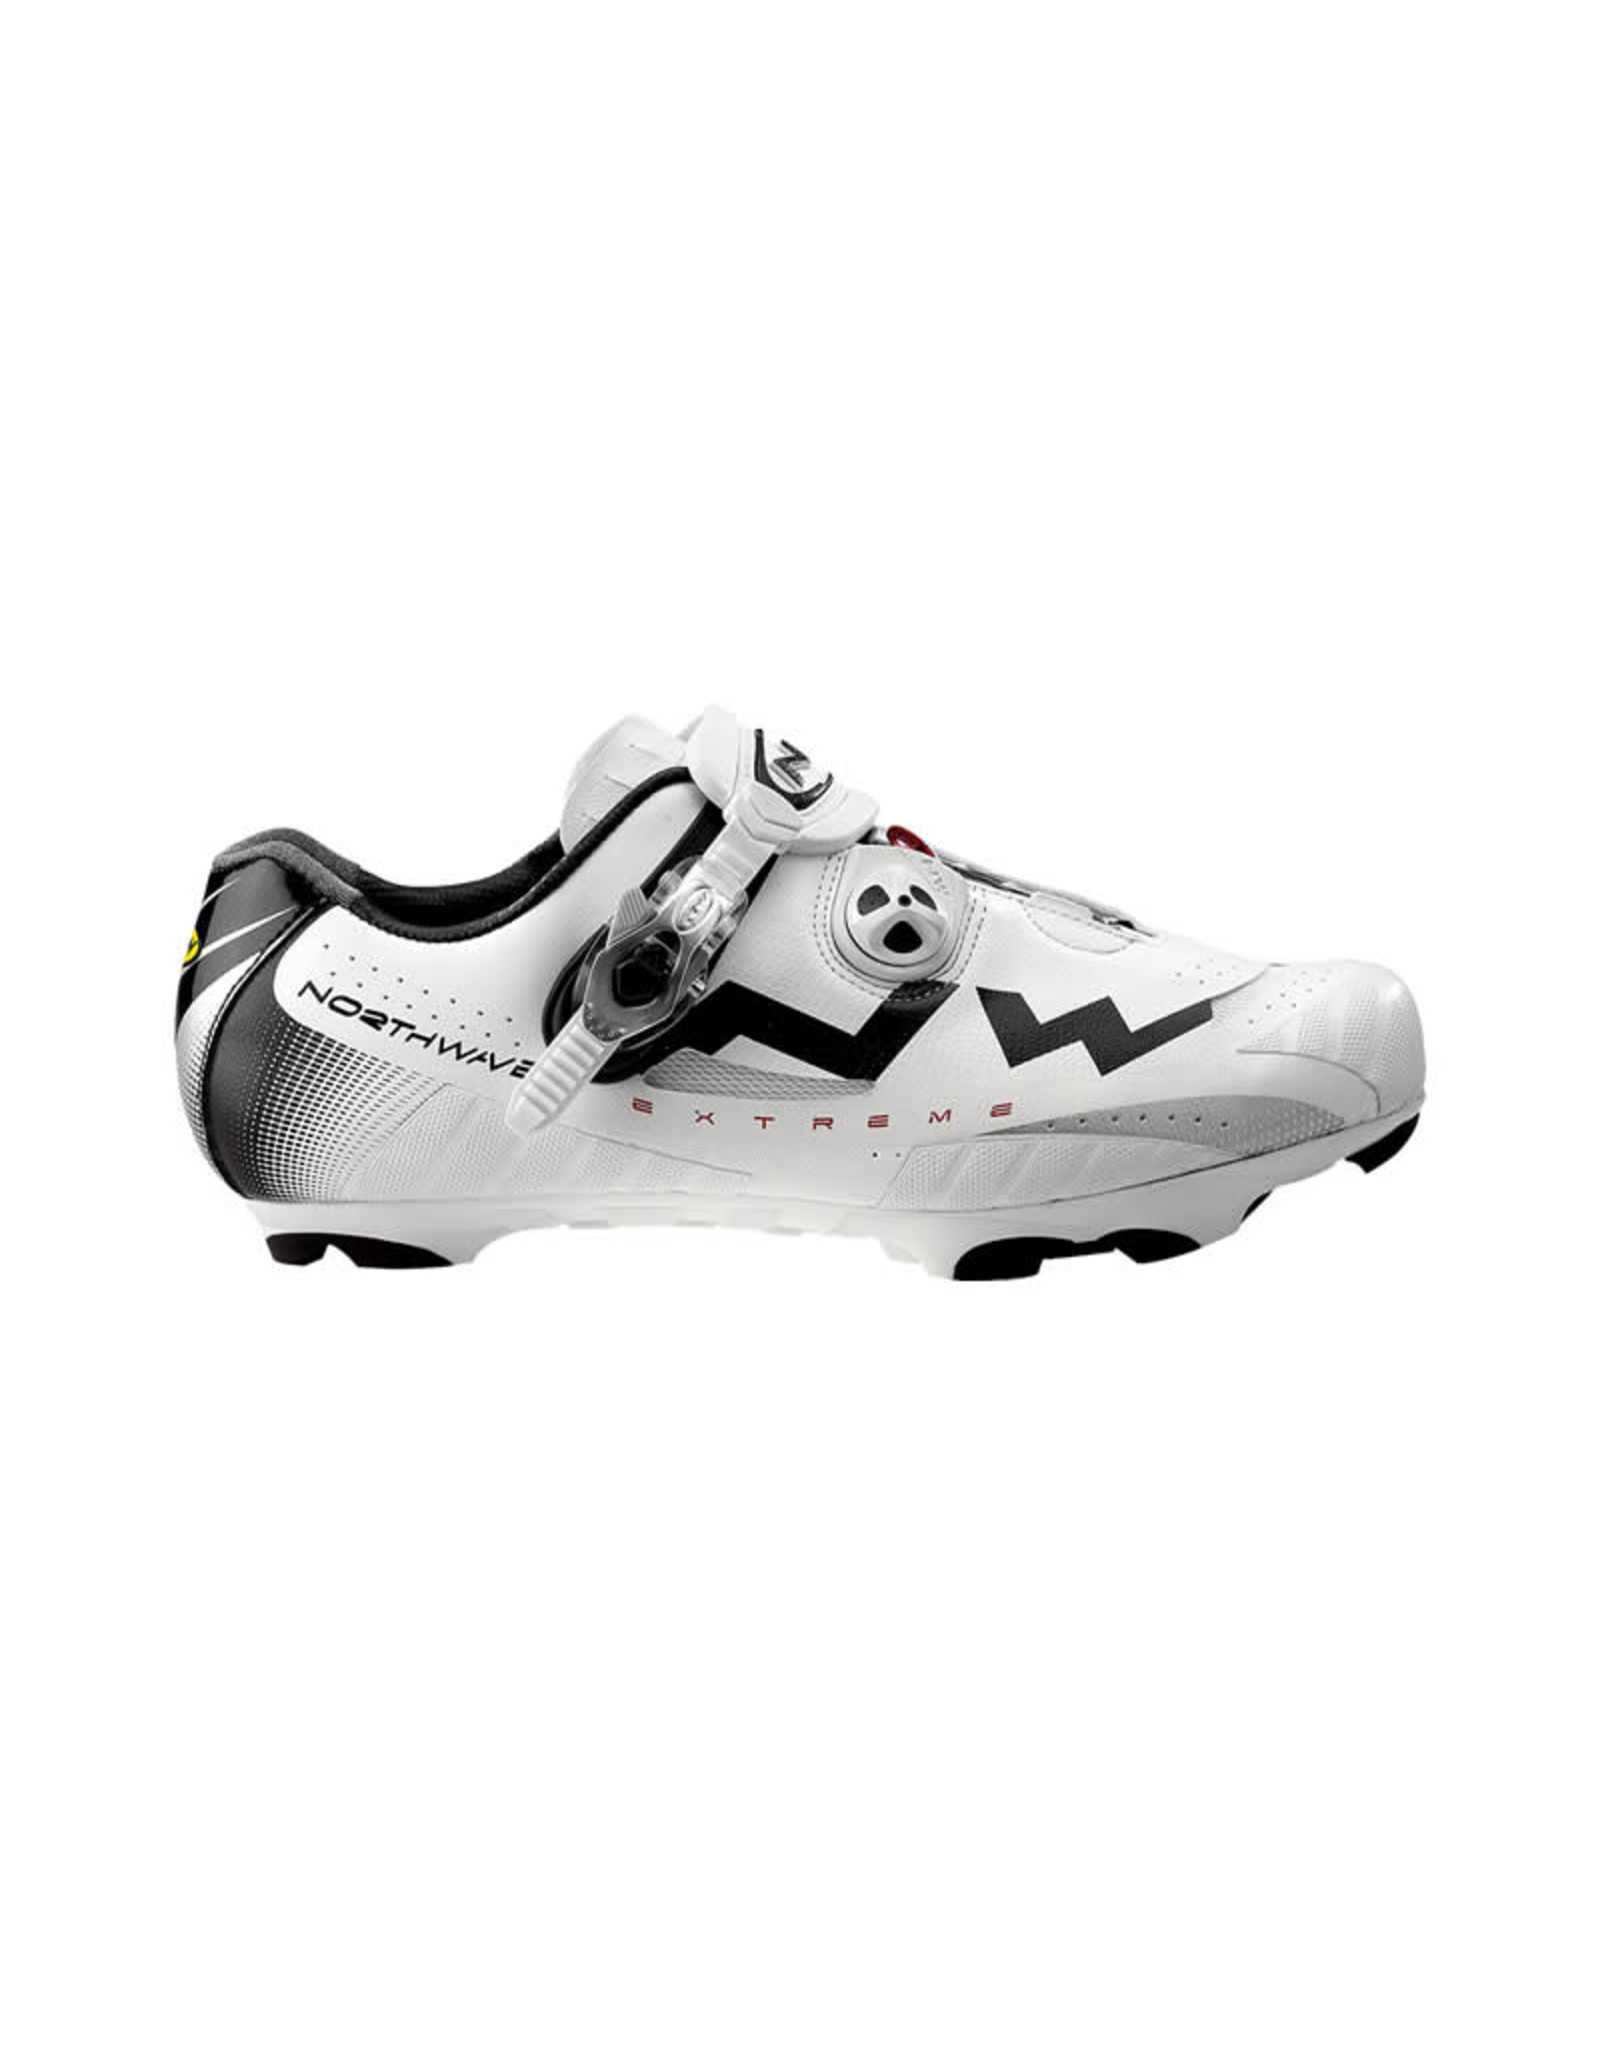 Northwave Extreme Tech MTB Shoe (New Old Stock) White/Black 46